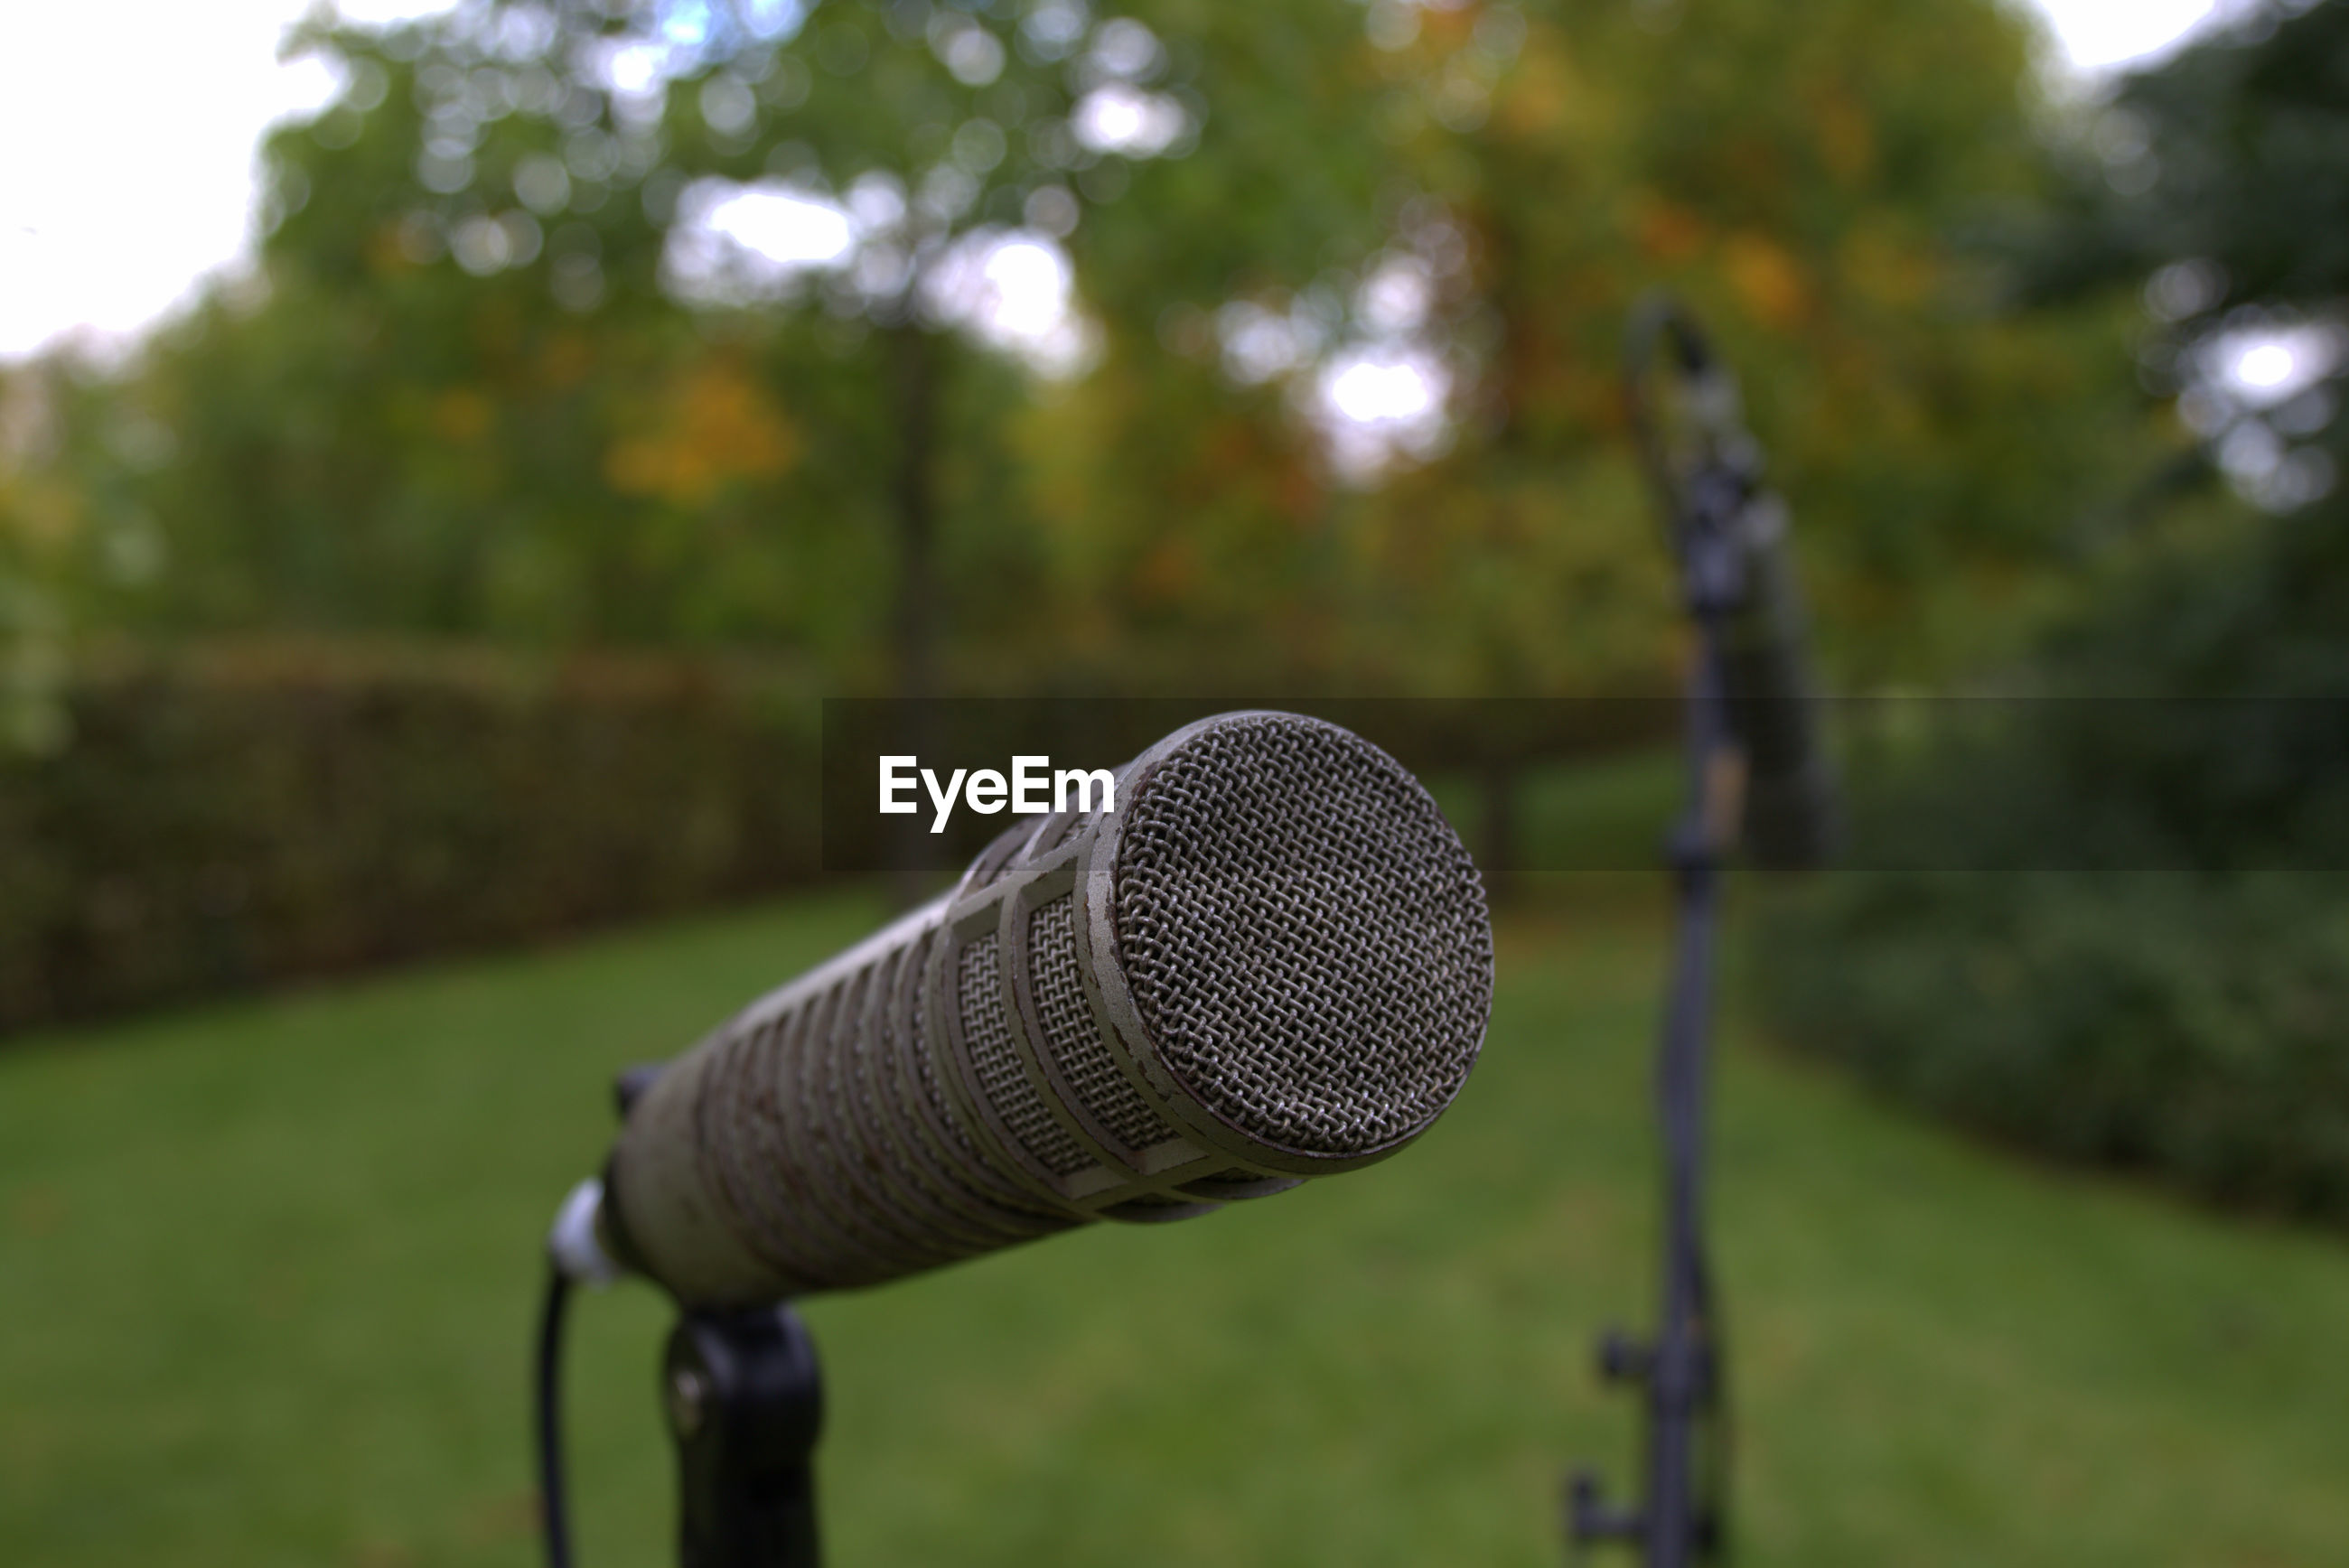 Close-up of microphone on grassy field